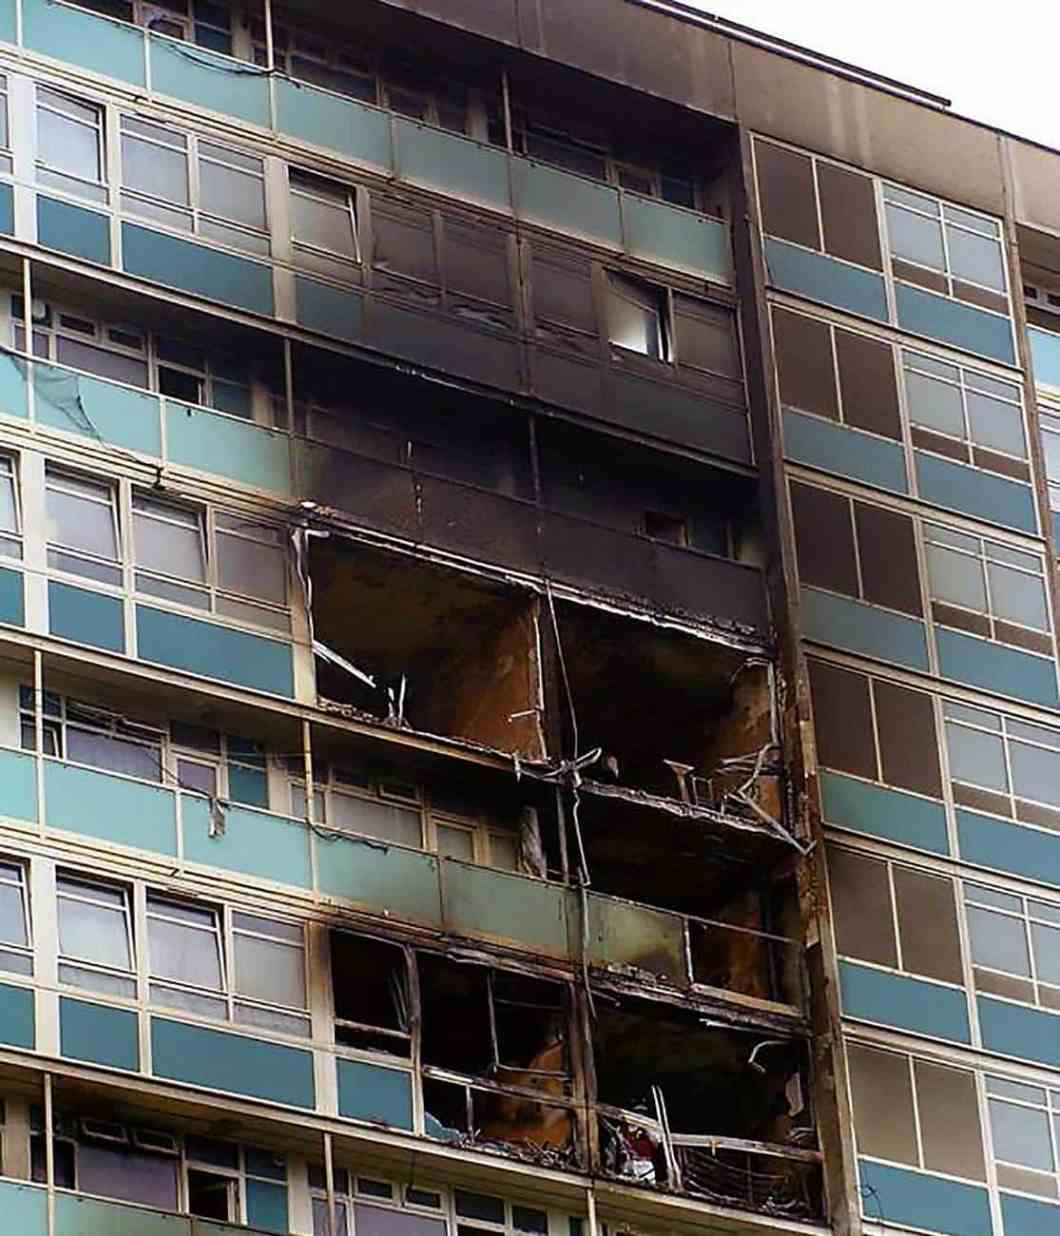 Fire in Lakanal House (July 2009) in which six people died.